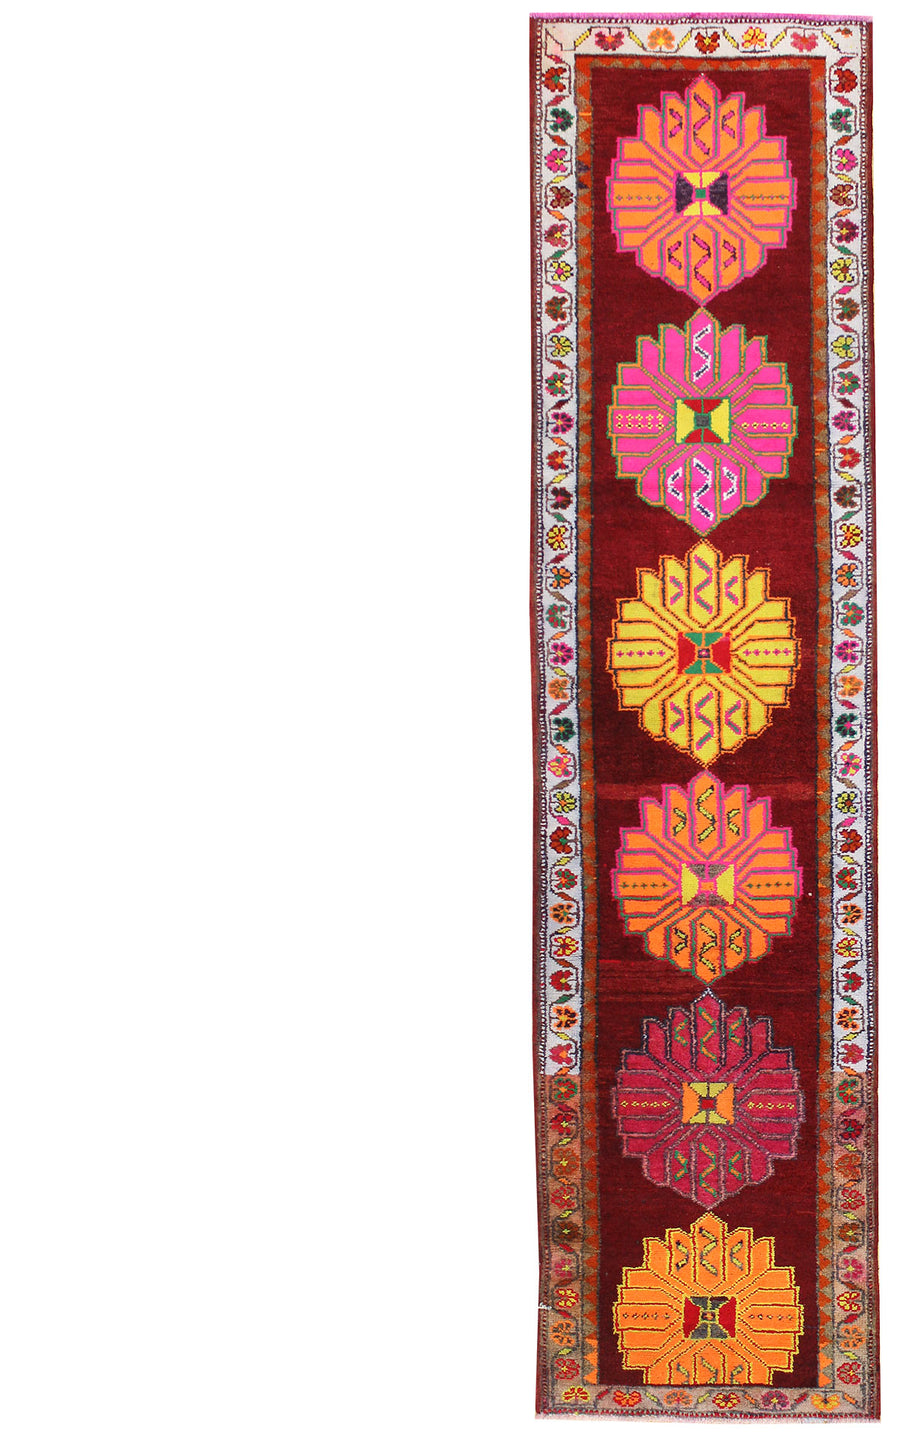 KURDISH HANDKNOTTED RUG, J48866